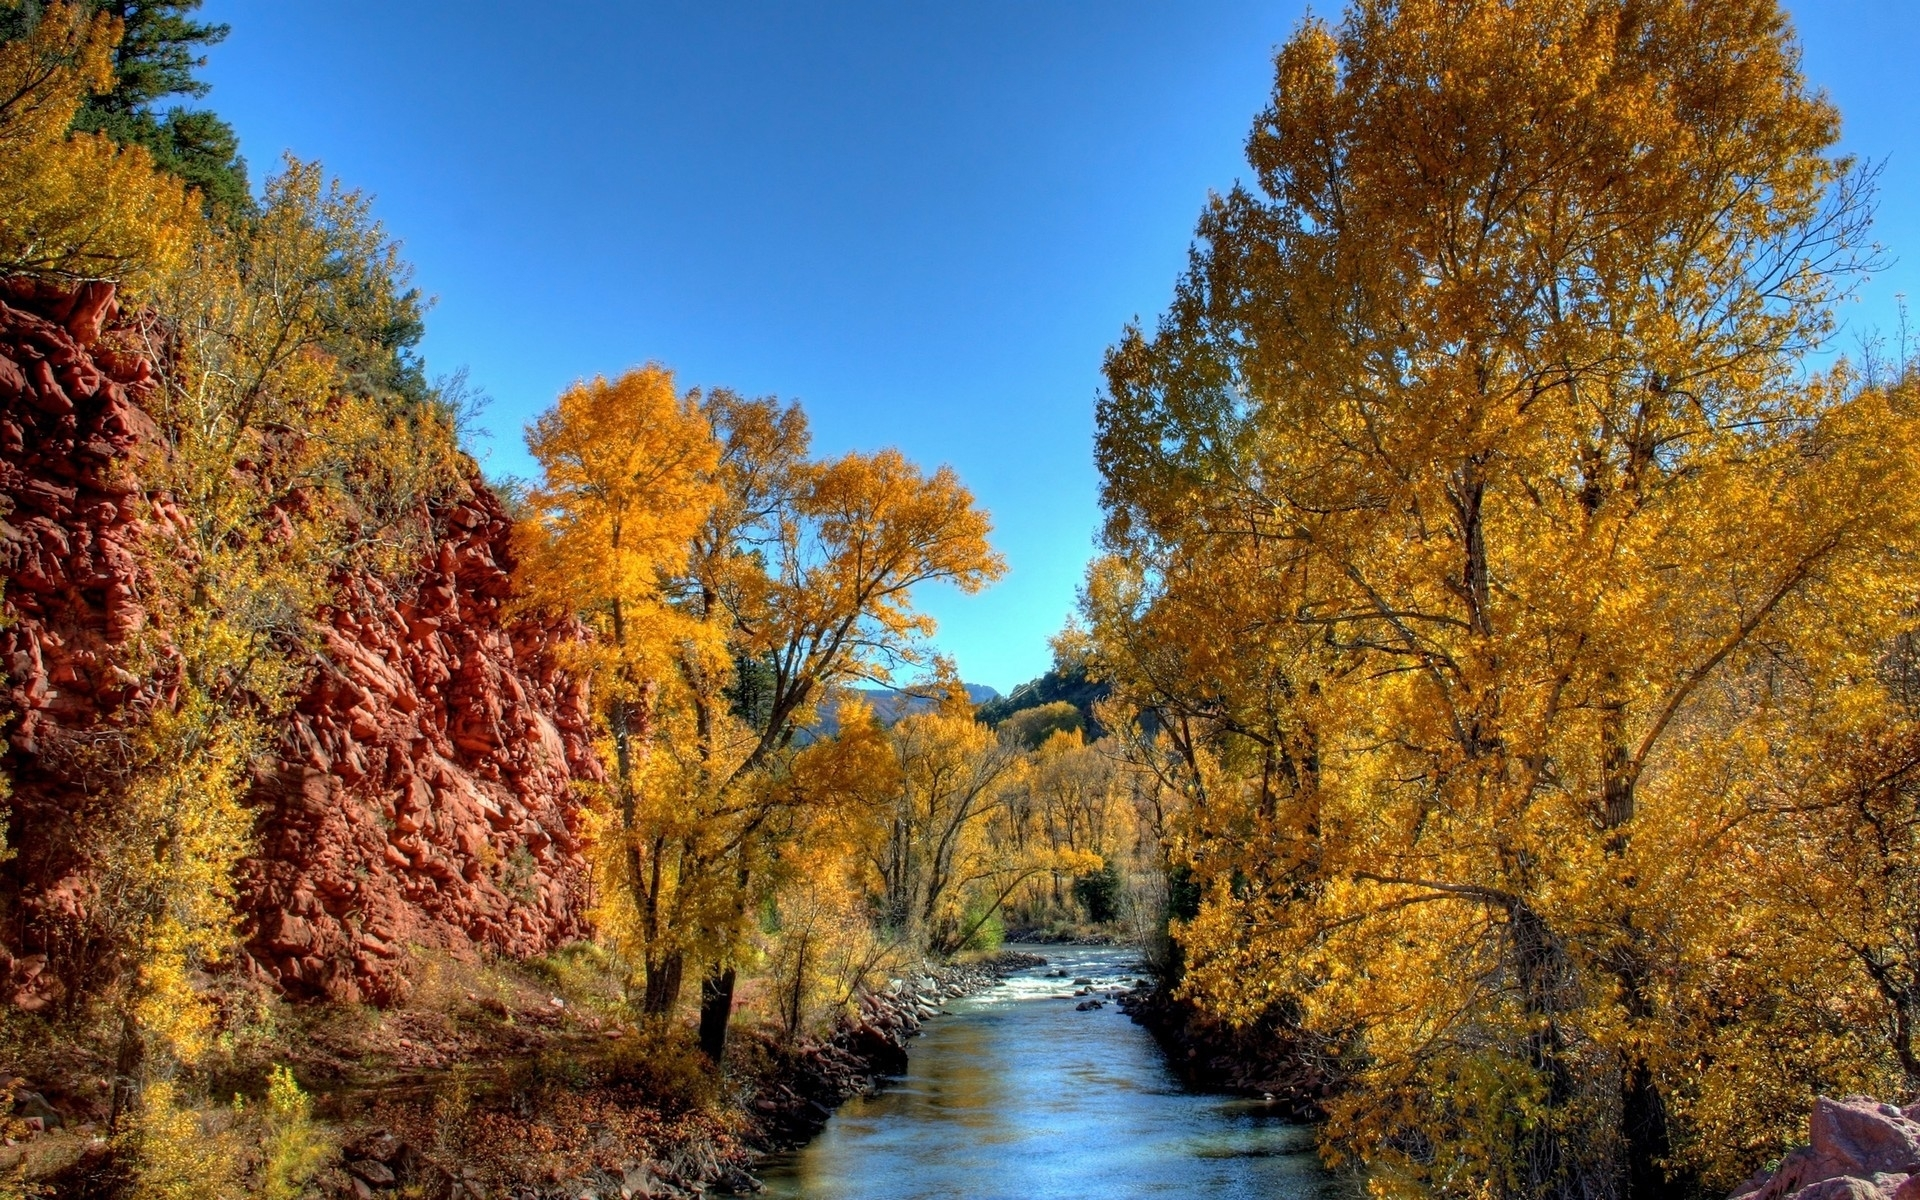 Download mobile wallpaper Autumn, Trees, Rivers, Landscape for free.